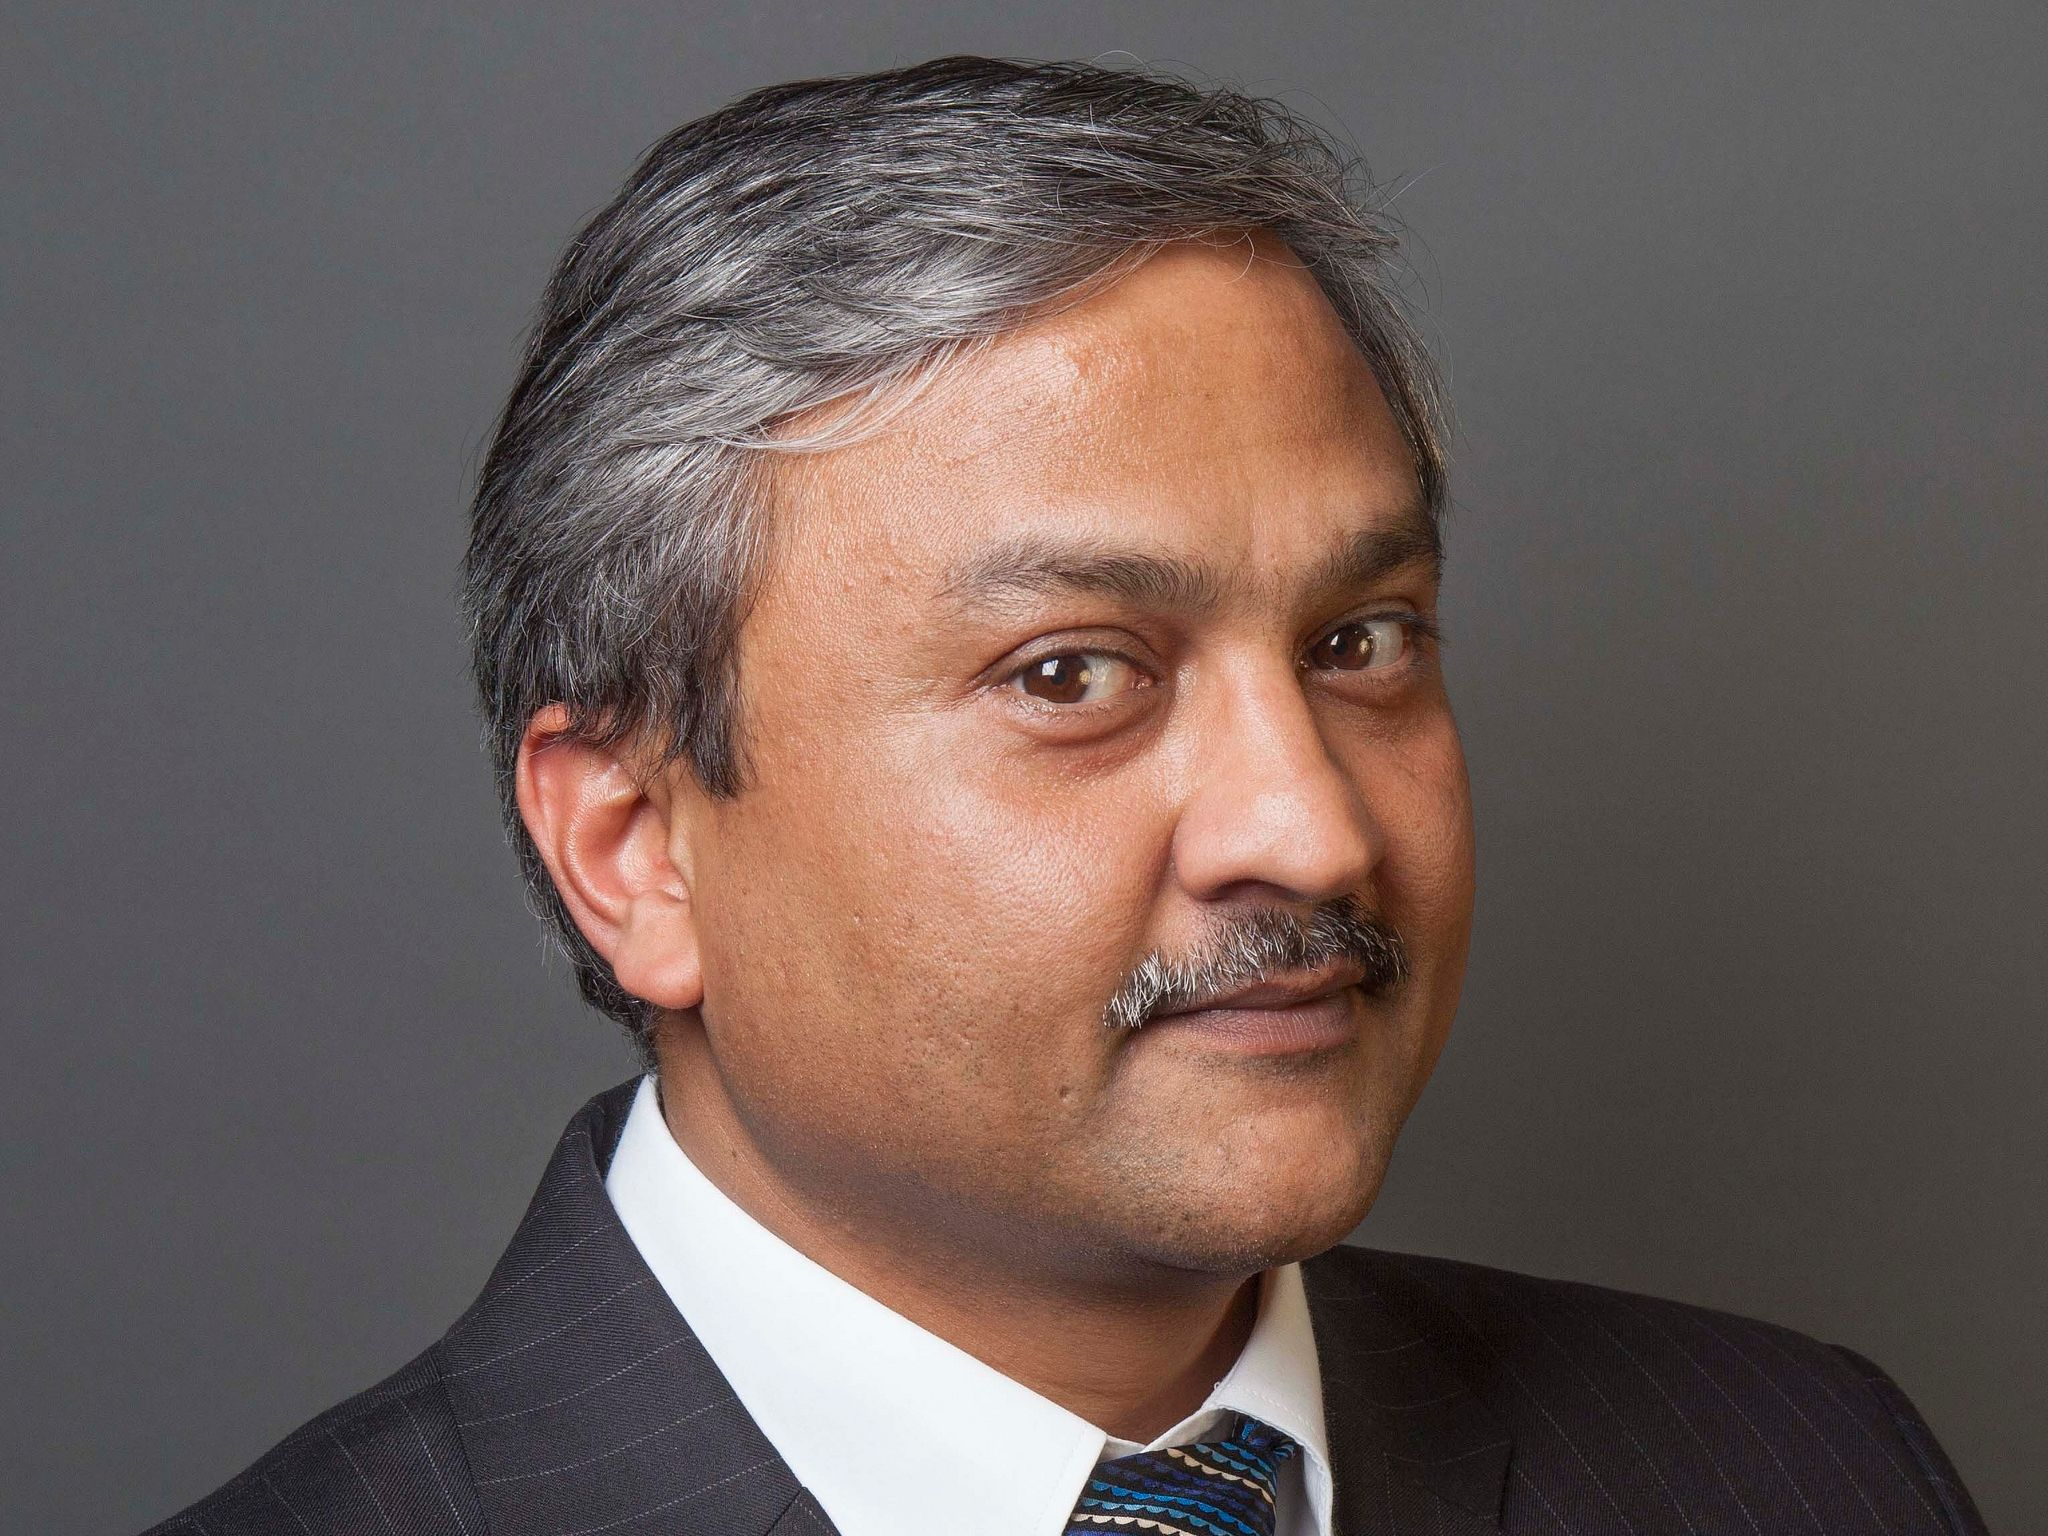 Sathyajit Gubbi is associate professor at the Faculty of Economics and Business of the University of Groningen, with expertise in internationalization and strategic transformation of firms from developing economies